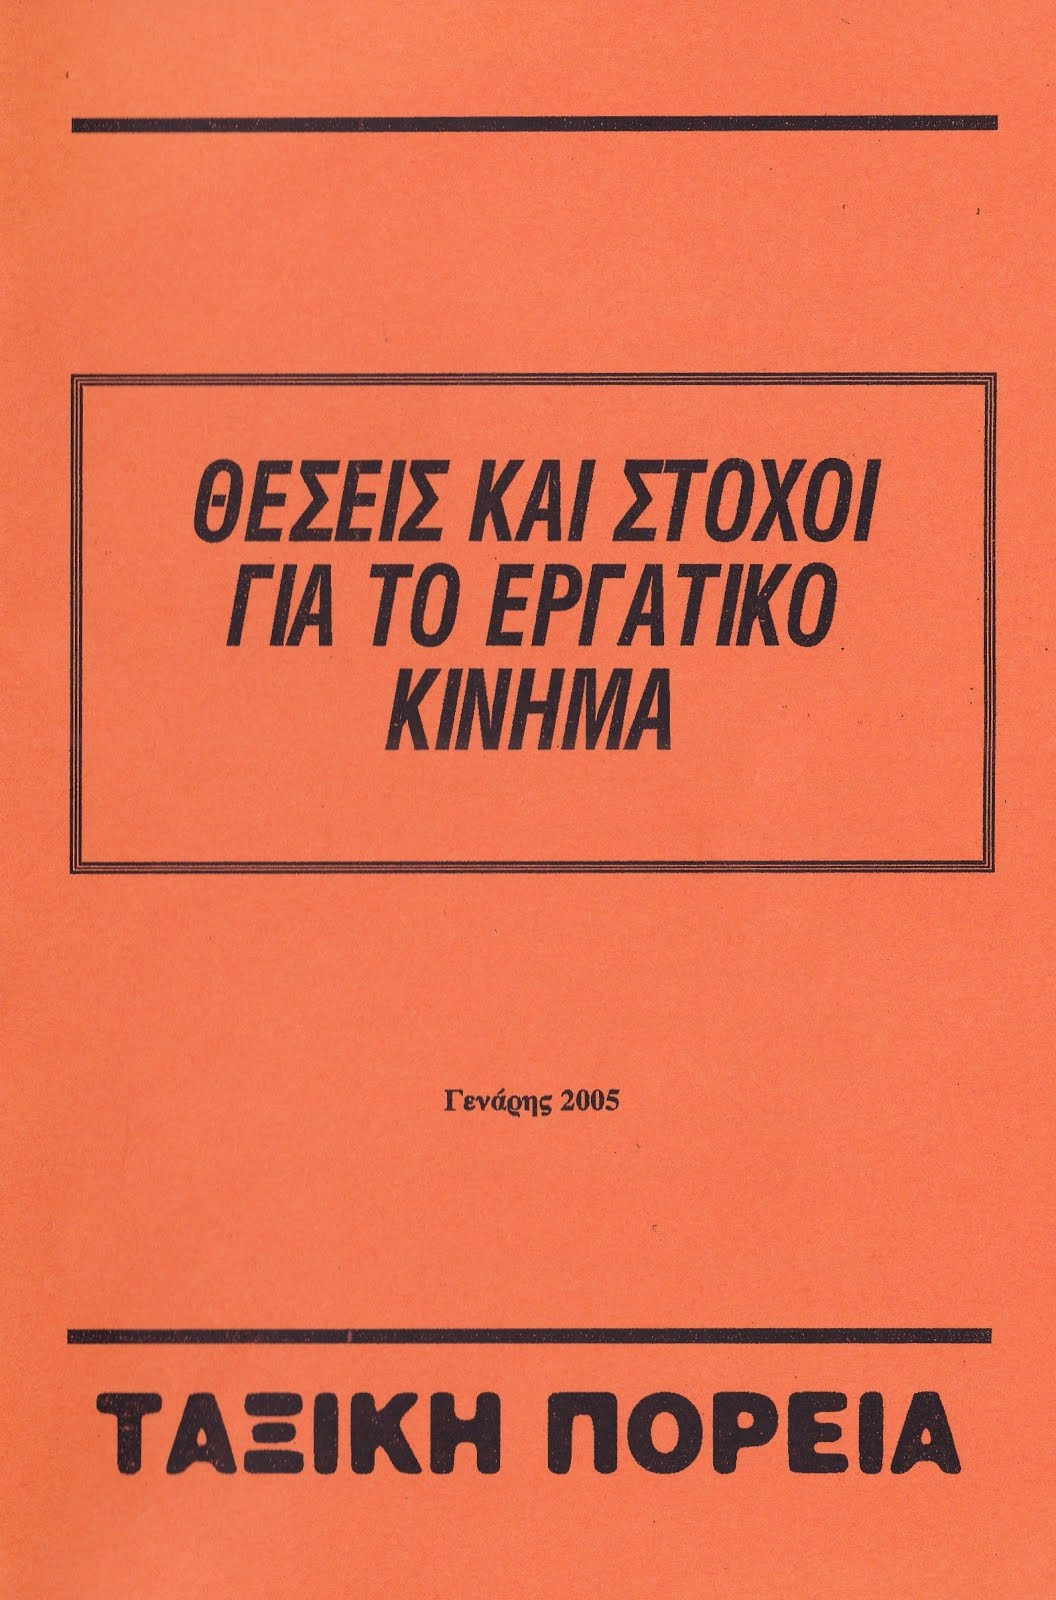 ΤΑΞΙΚΗ ΠΟΡΕΙΑ-ΘΕΣΕΙΣ ΚΑΙ ΣΤΟΧΟΙ